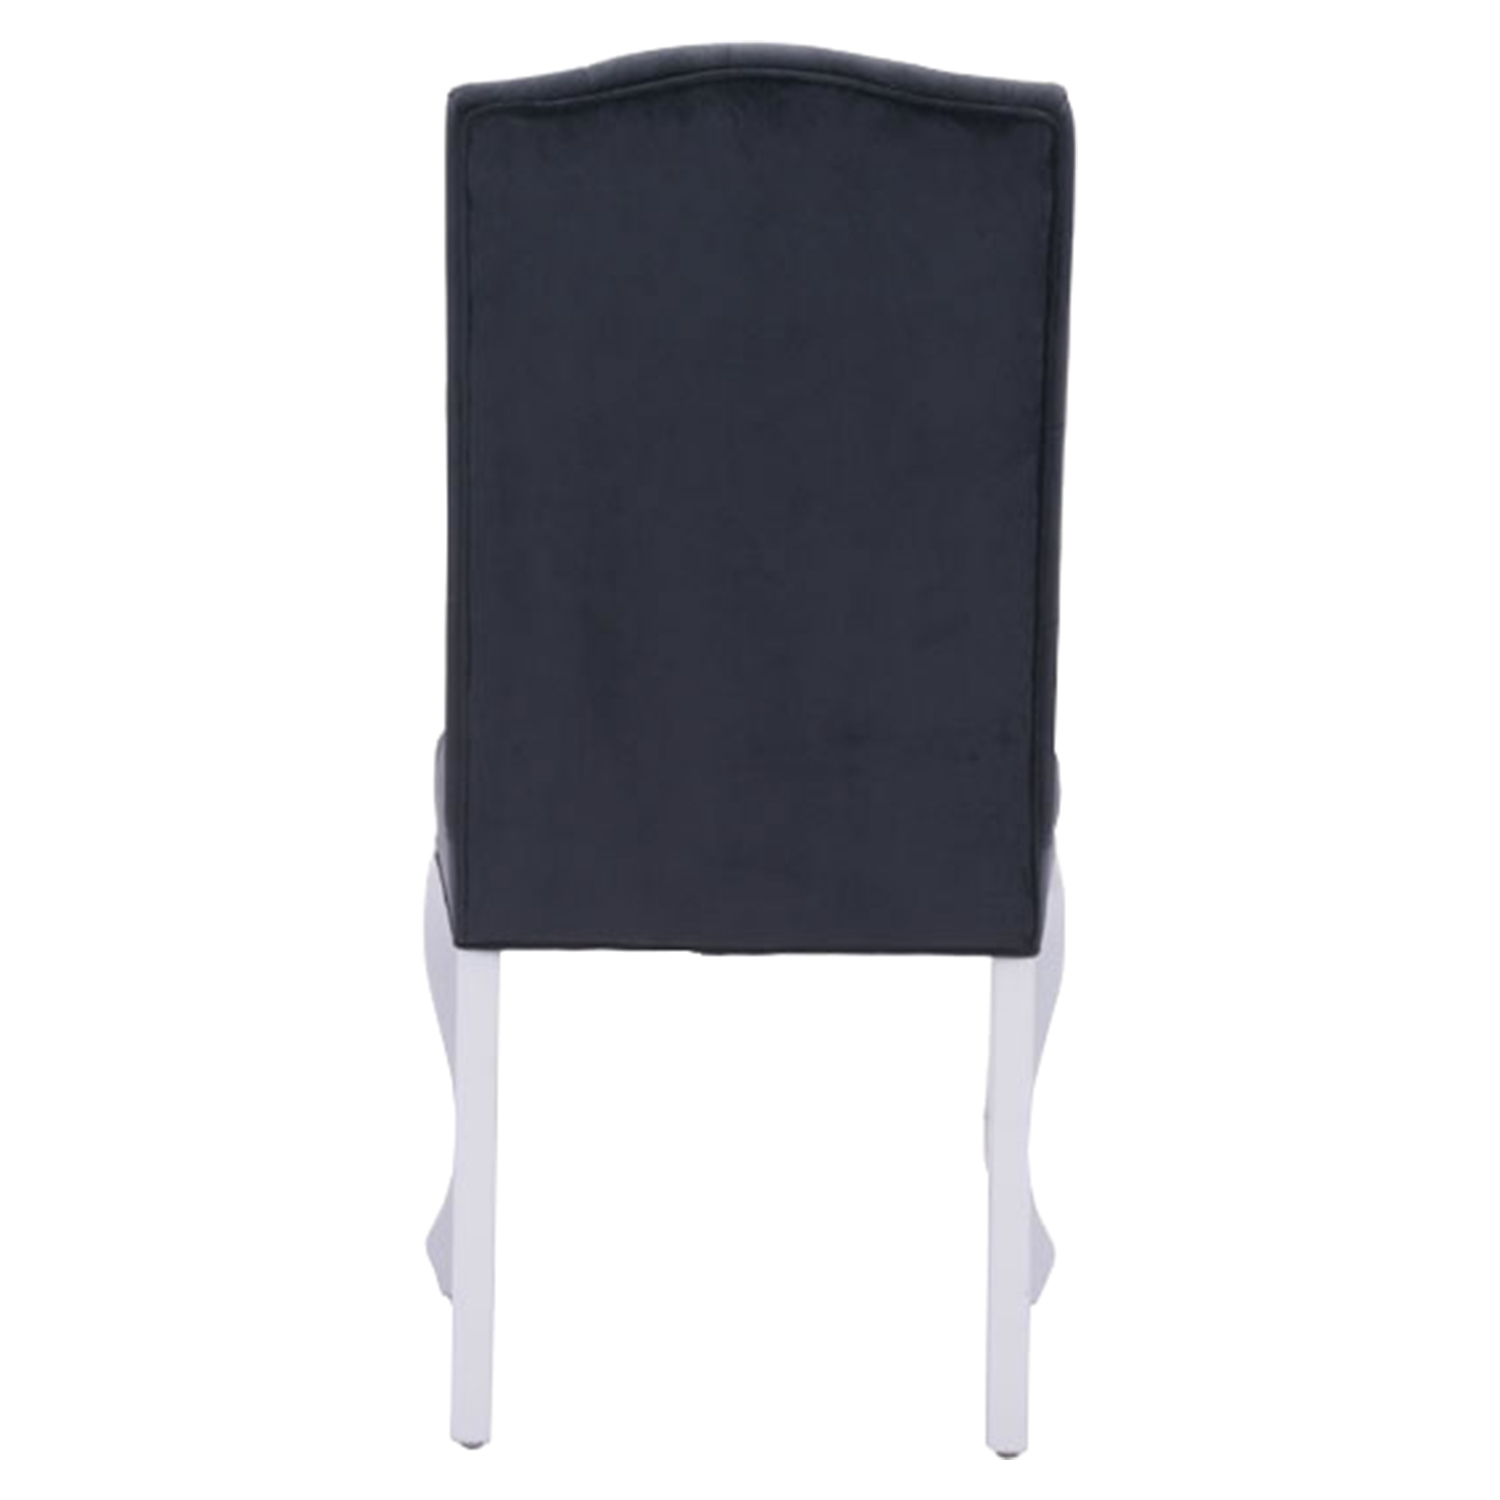 Bourbon Tufted Dining Chair - Black Velvet - ZM-100226